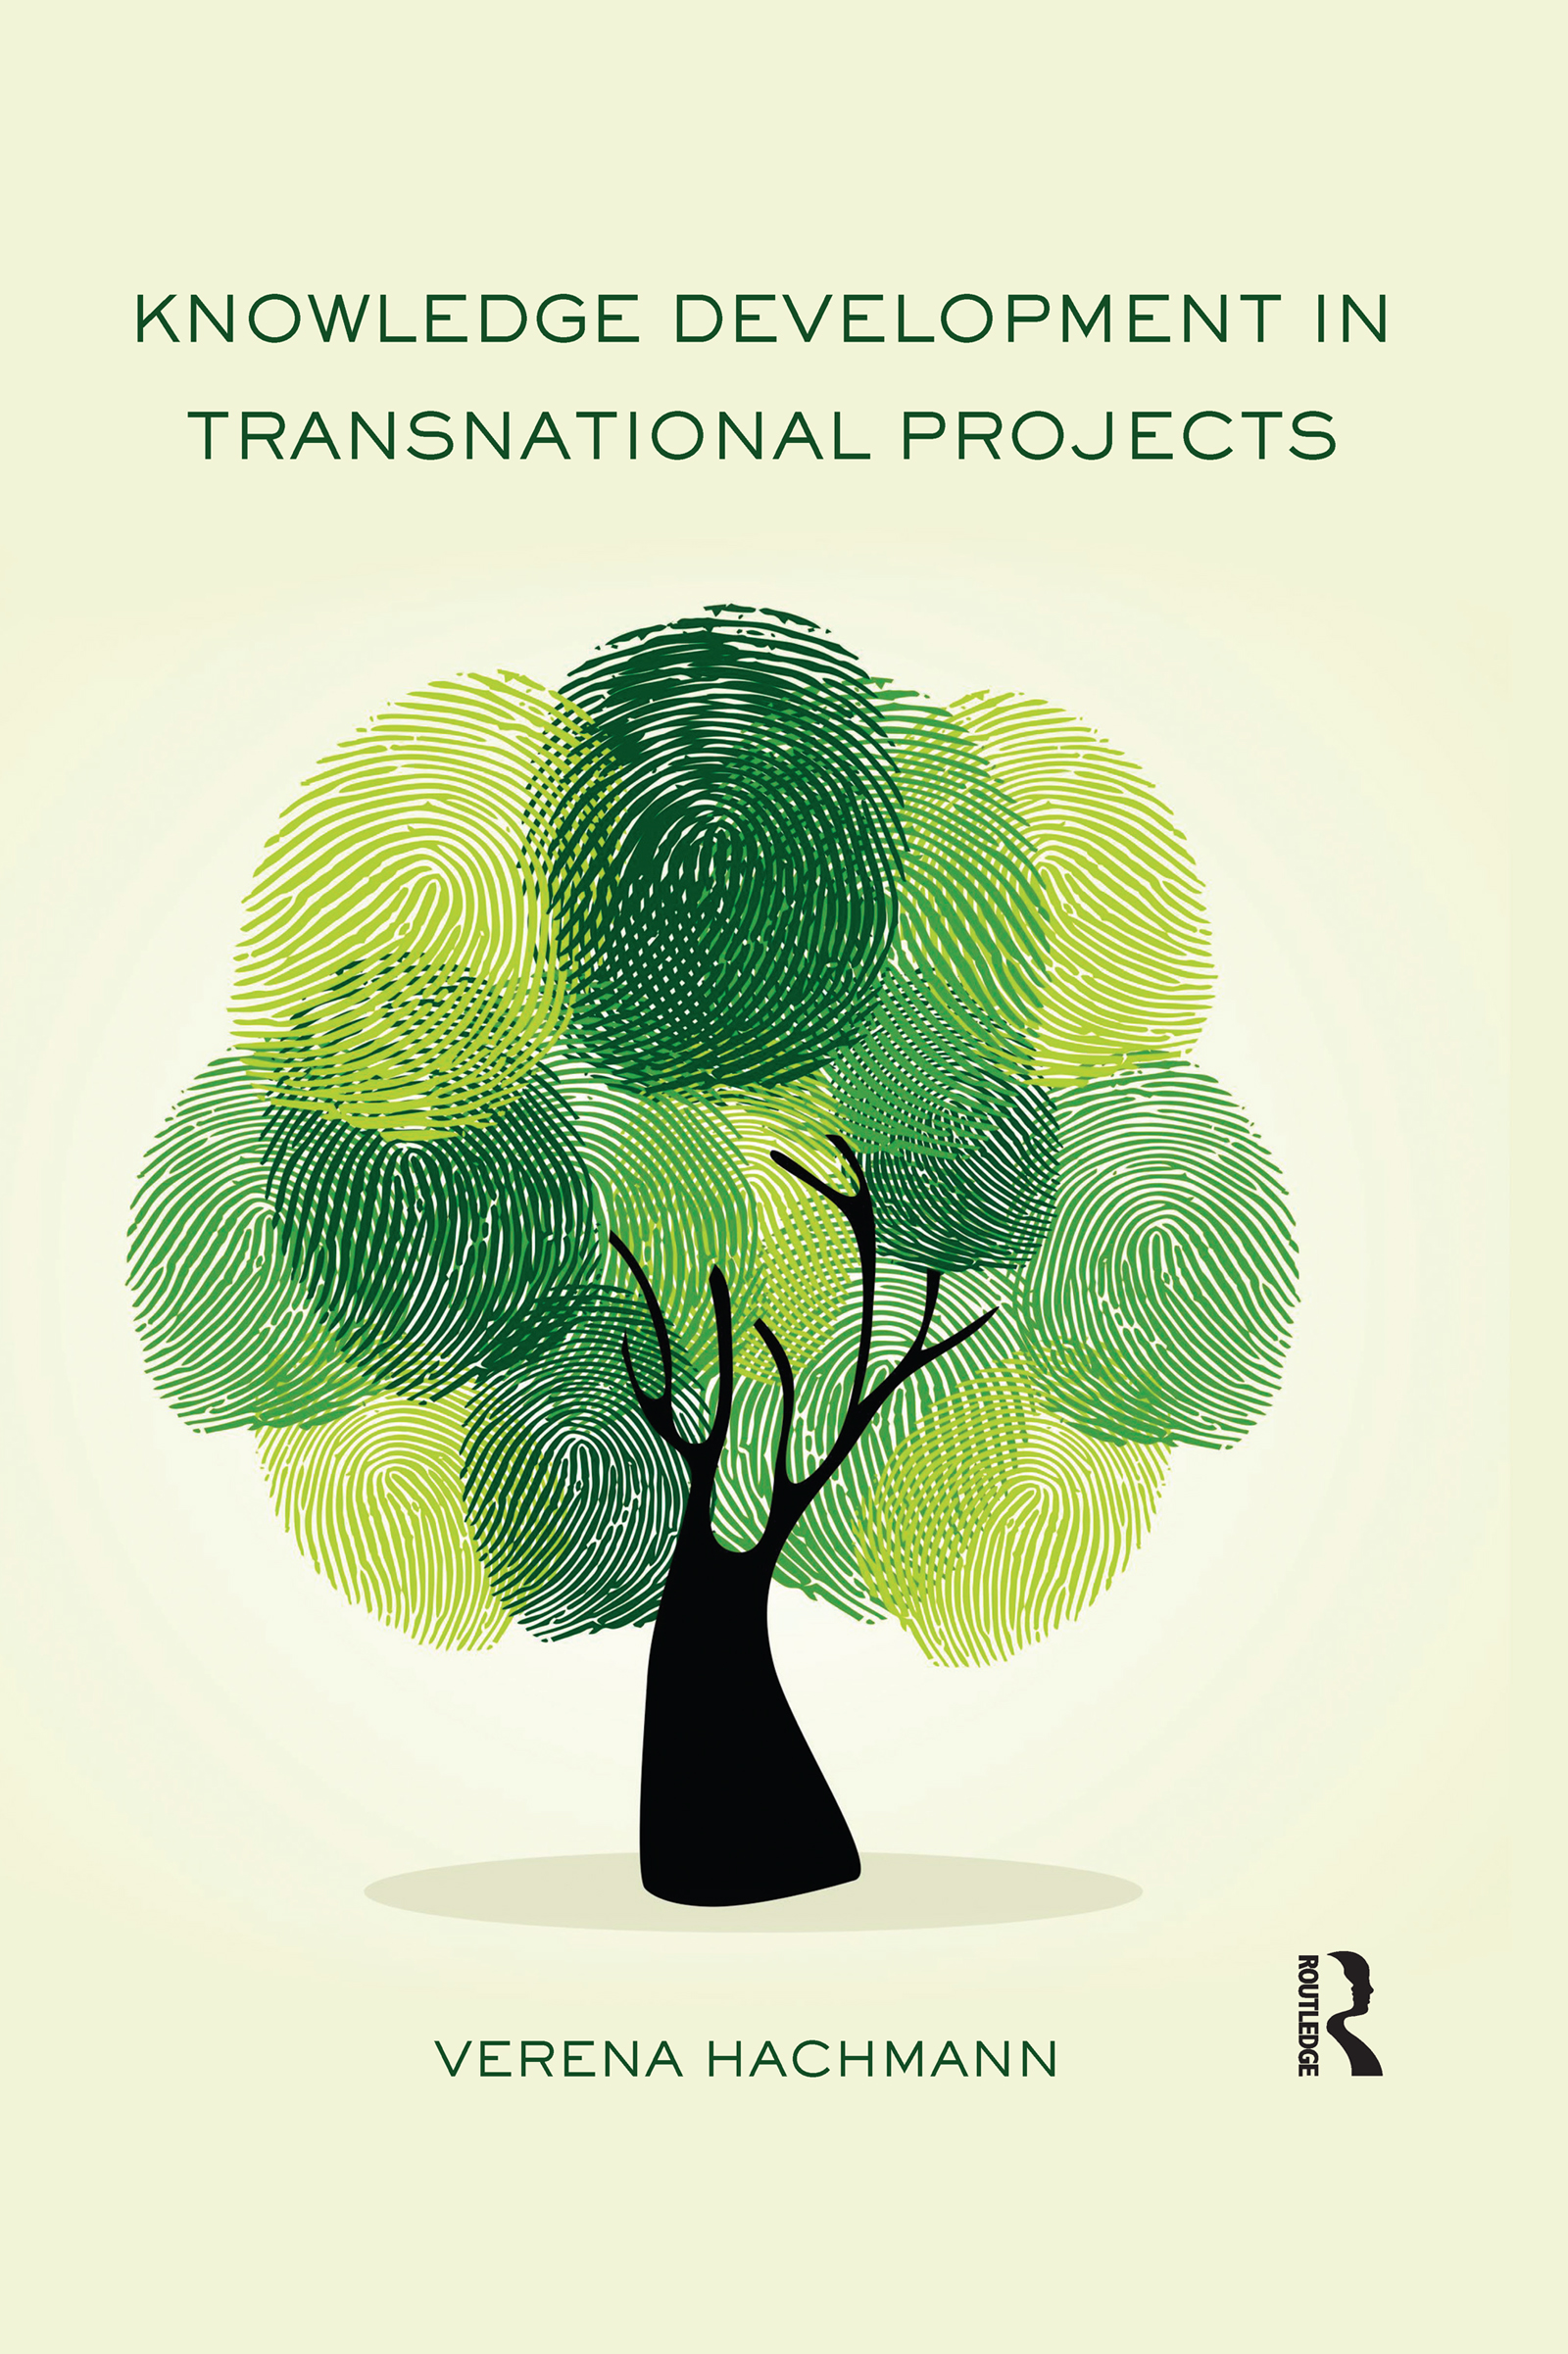 Knowledge Development in Transnational Projects